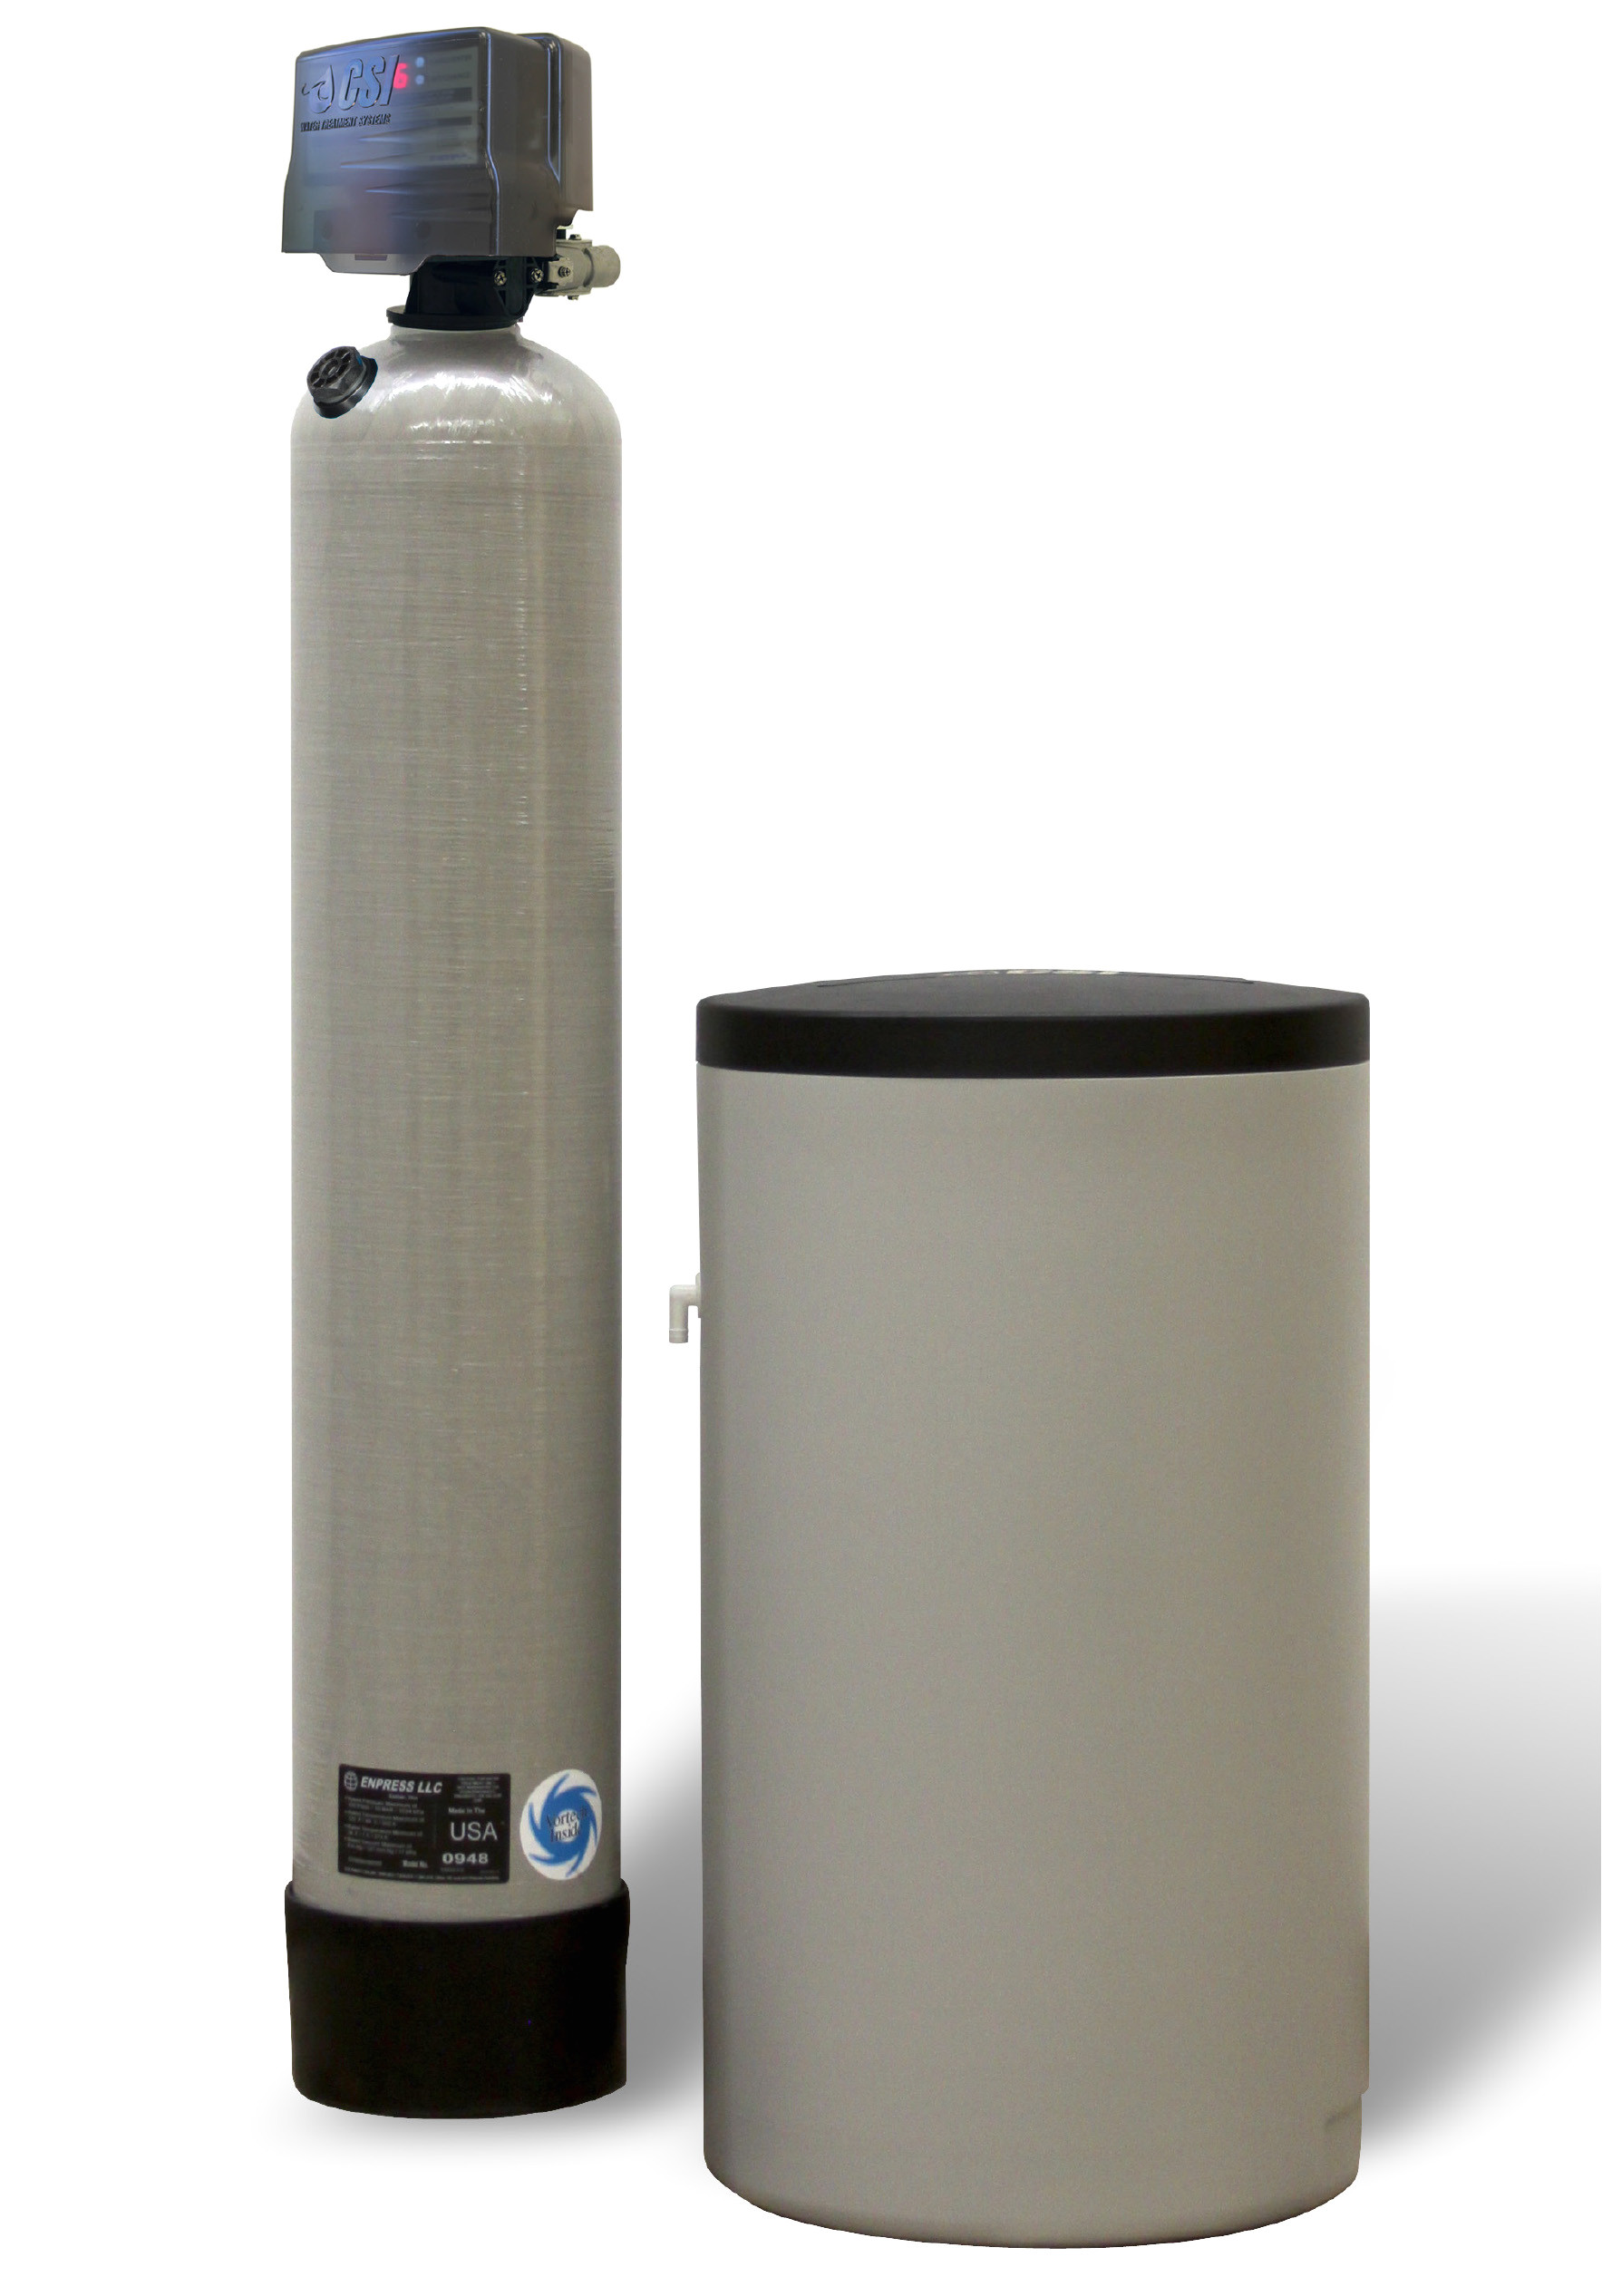 Culligan Water softener Rental Prices Rent or Buy Water softener Water softener Filter Combination Systems